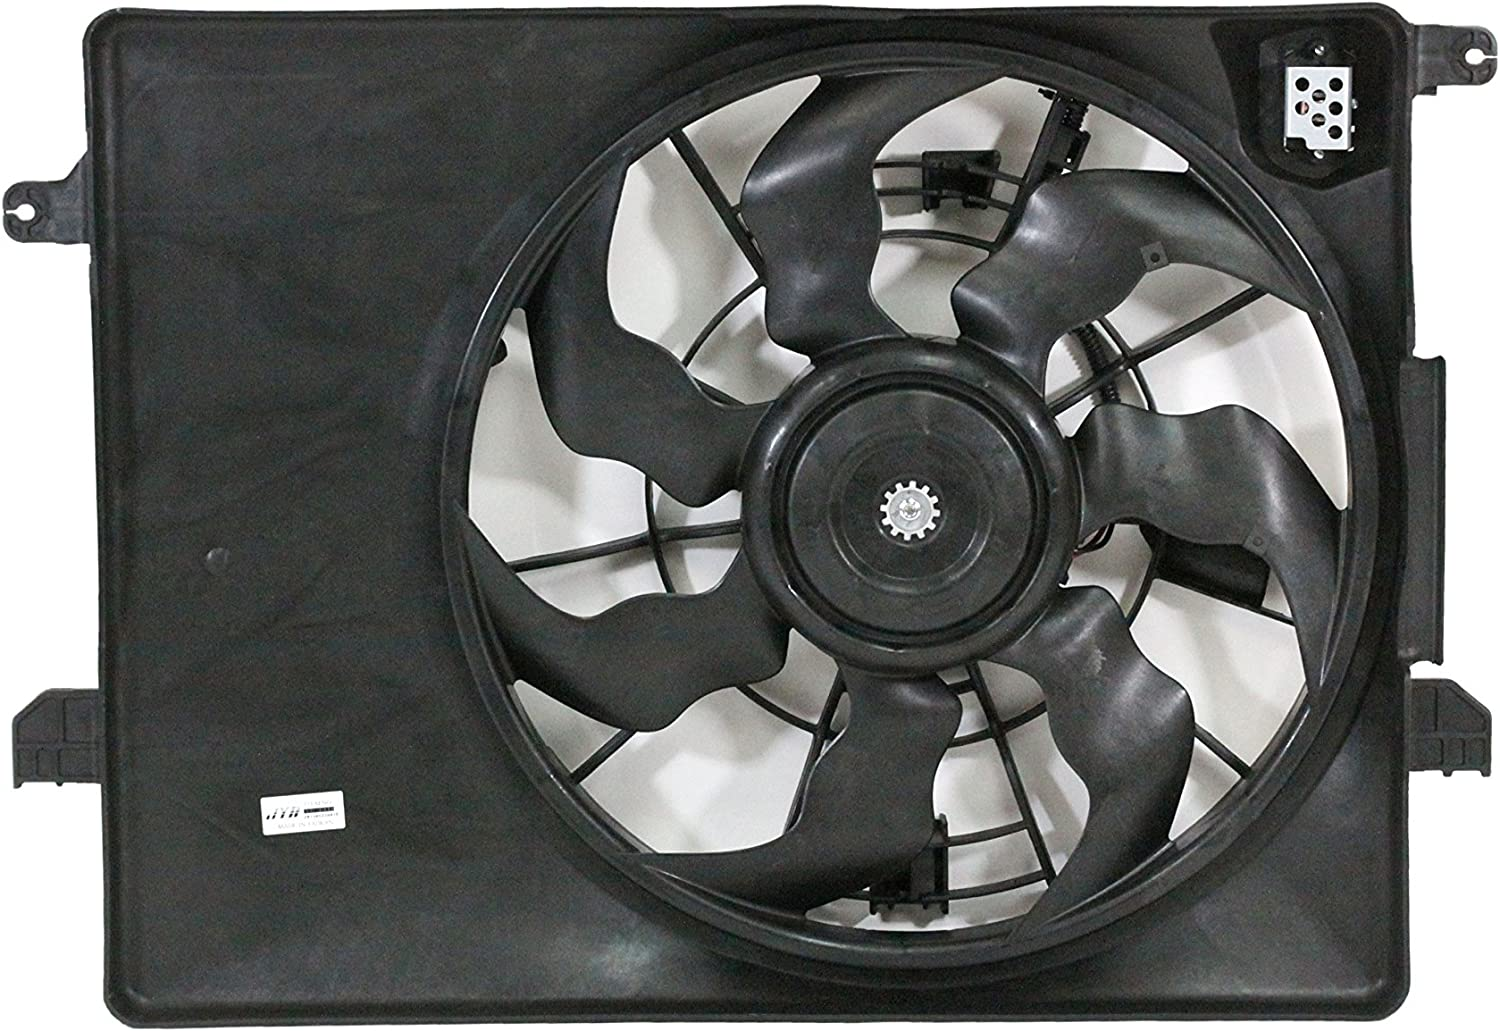 Engine Cooling Fan Assembly - Cooling Direct Fit/For 253802S500 11-13 Kia Sportage 2.4L 10-13 Hyundai Tucson